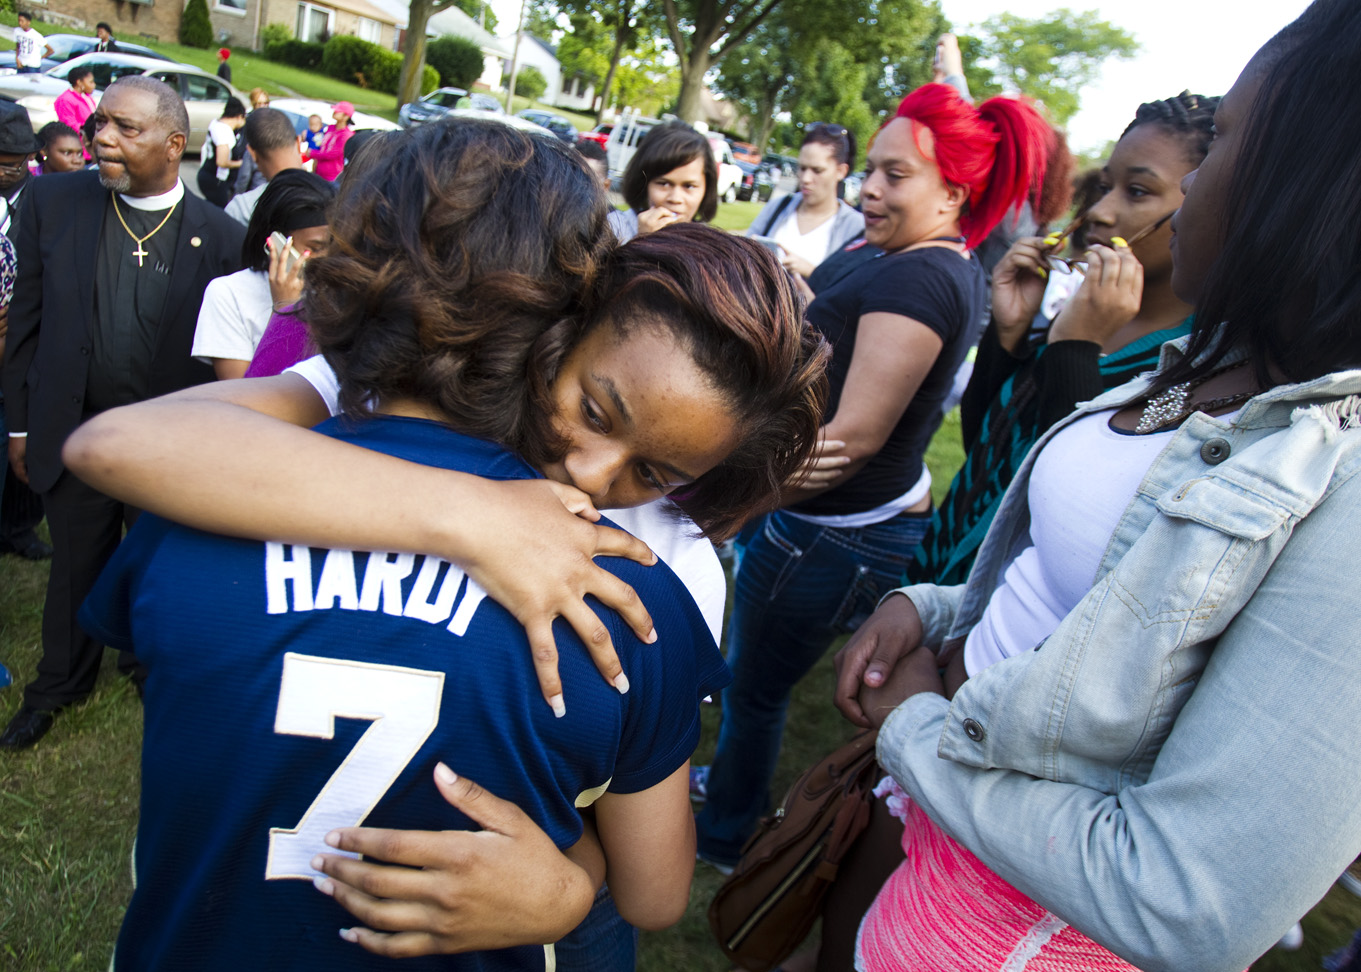 Kimberly Smith, 15, hugs her friend, Swanessey Covington-Juarez after the vigil to celebrate the life of Tariq Akbar.  Smith and Covington-Juarez were friends of Akbar.